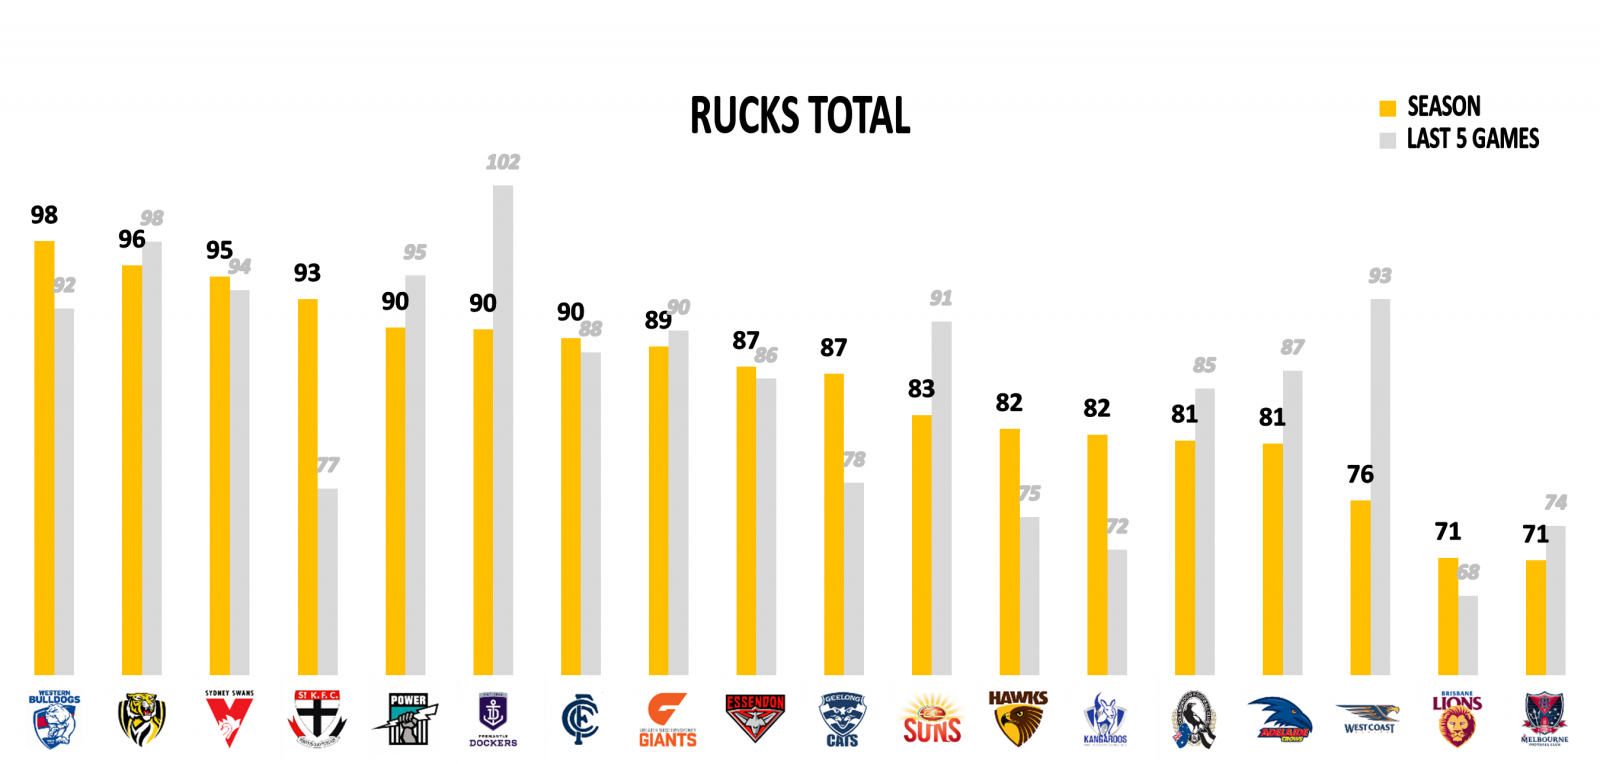 Ruck points against